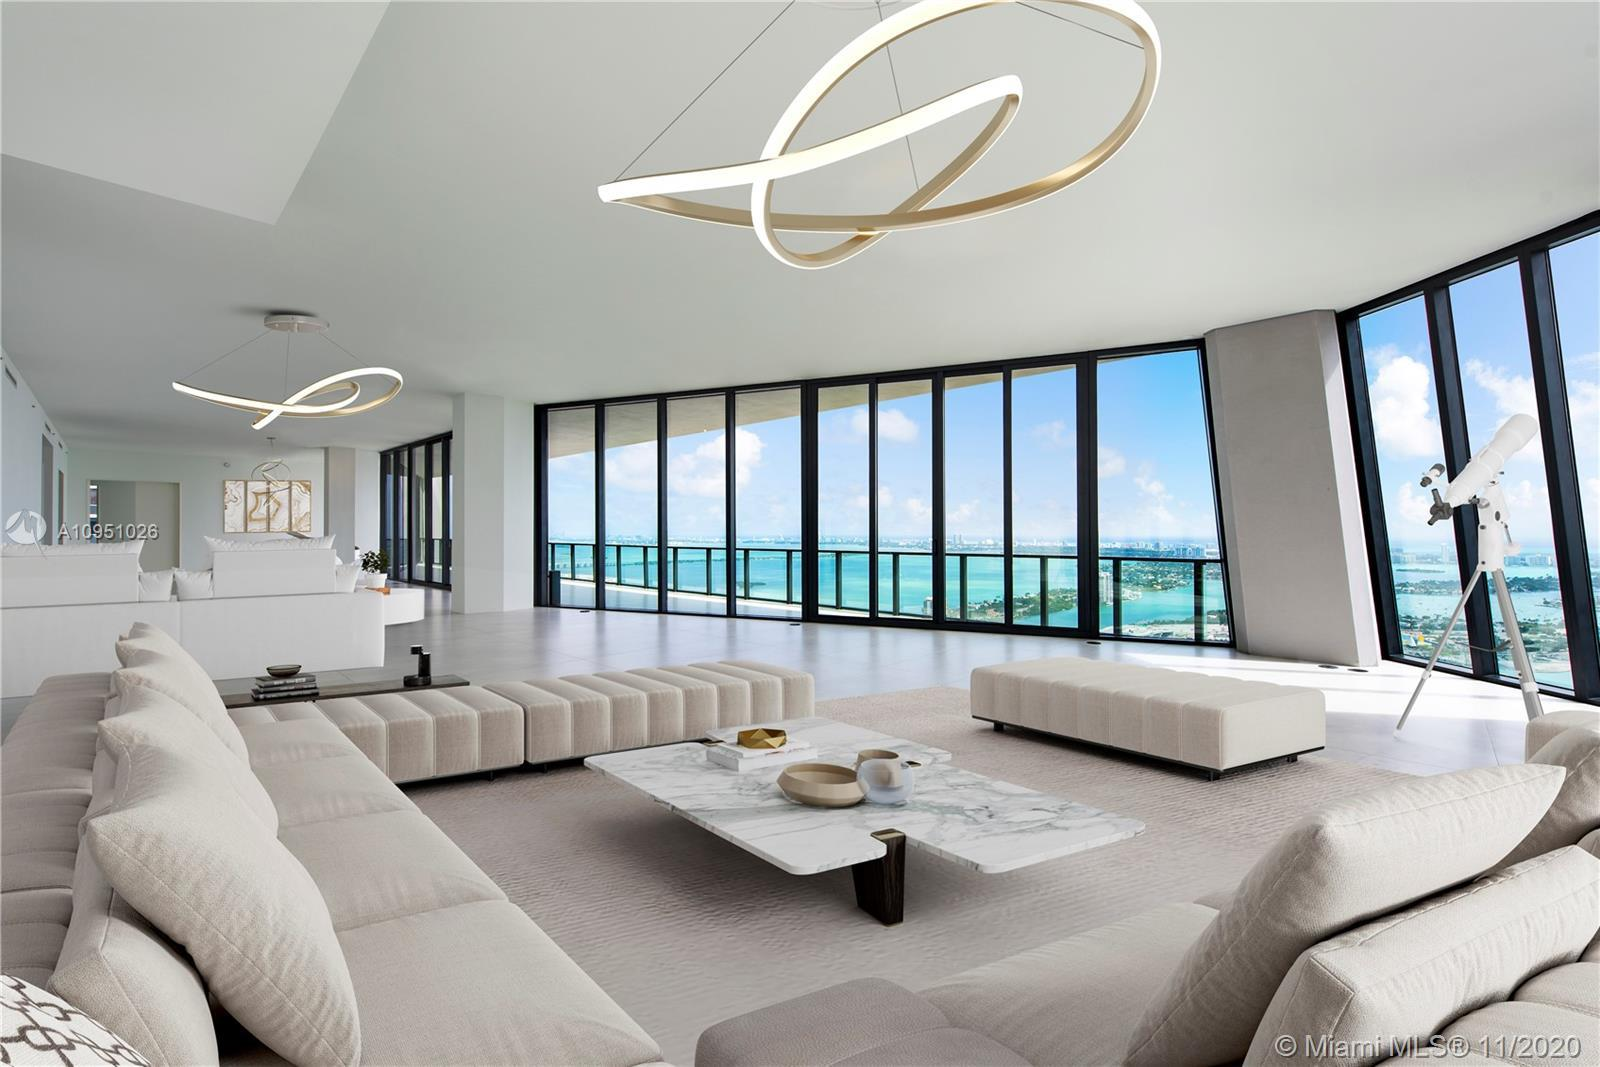 This residence floats high above the skyline and spans the entire 54th floor of one of Miami's most